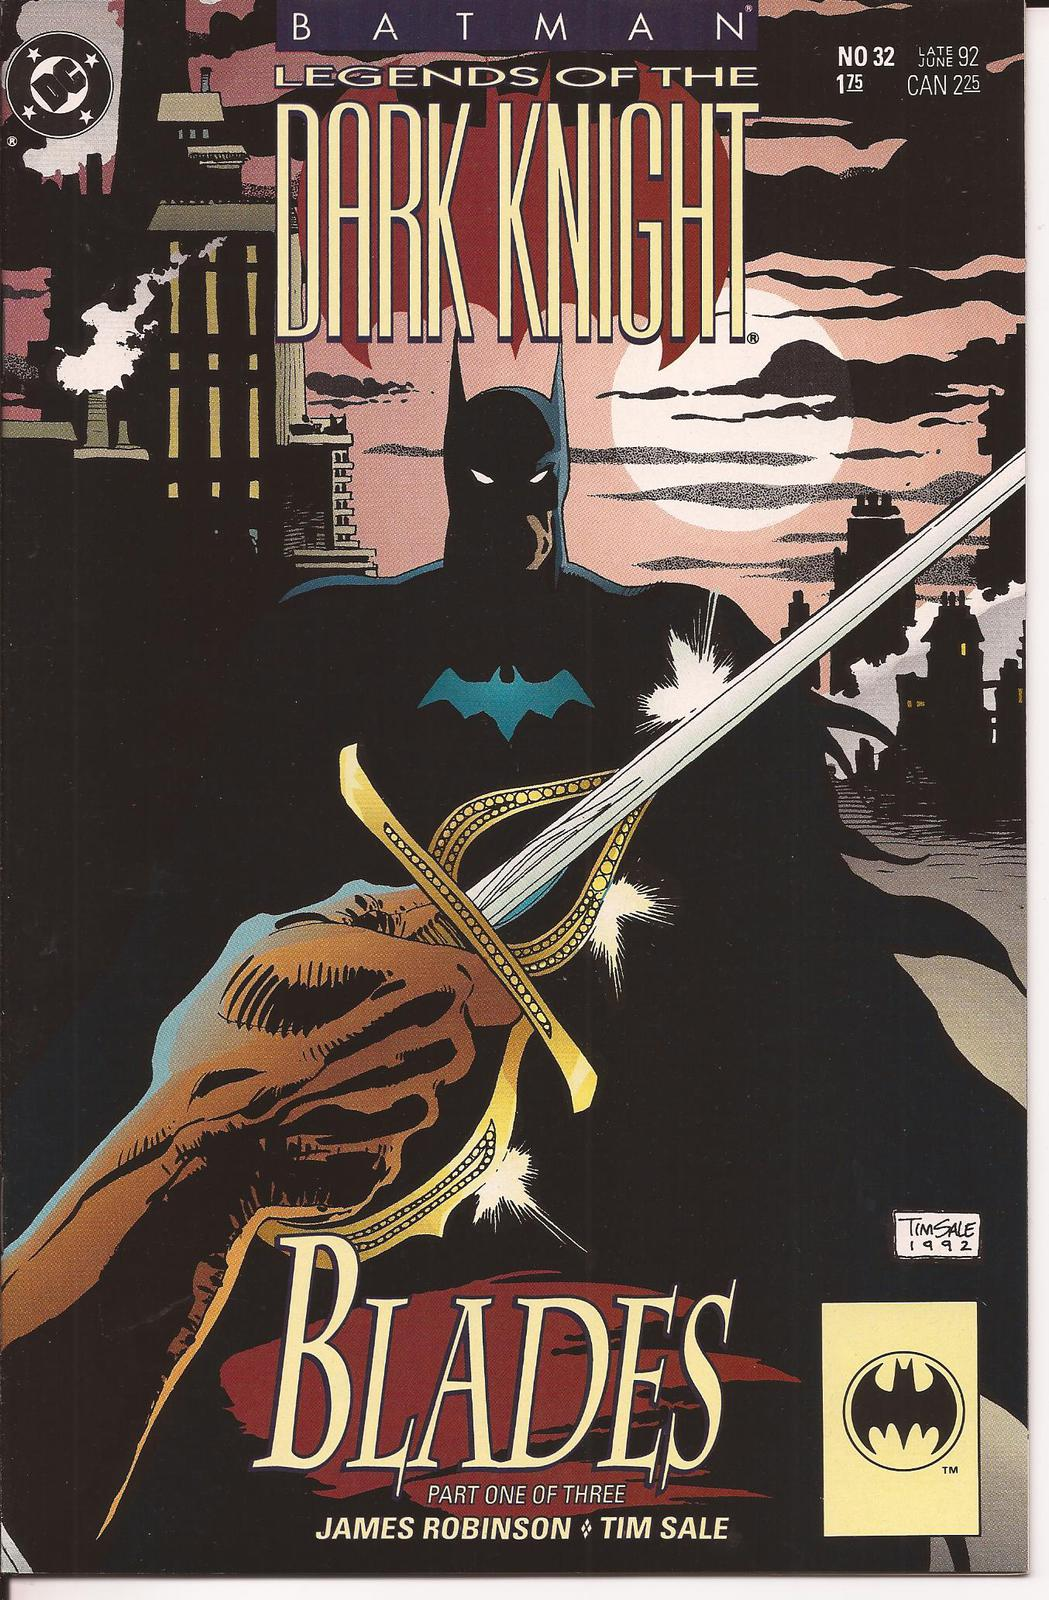 Primary image for DC Batman Legends Of The Dark Knight #32-34 Blades Storyline Bruce Wayne Gotham